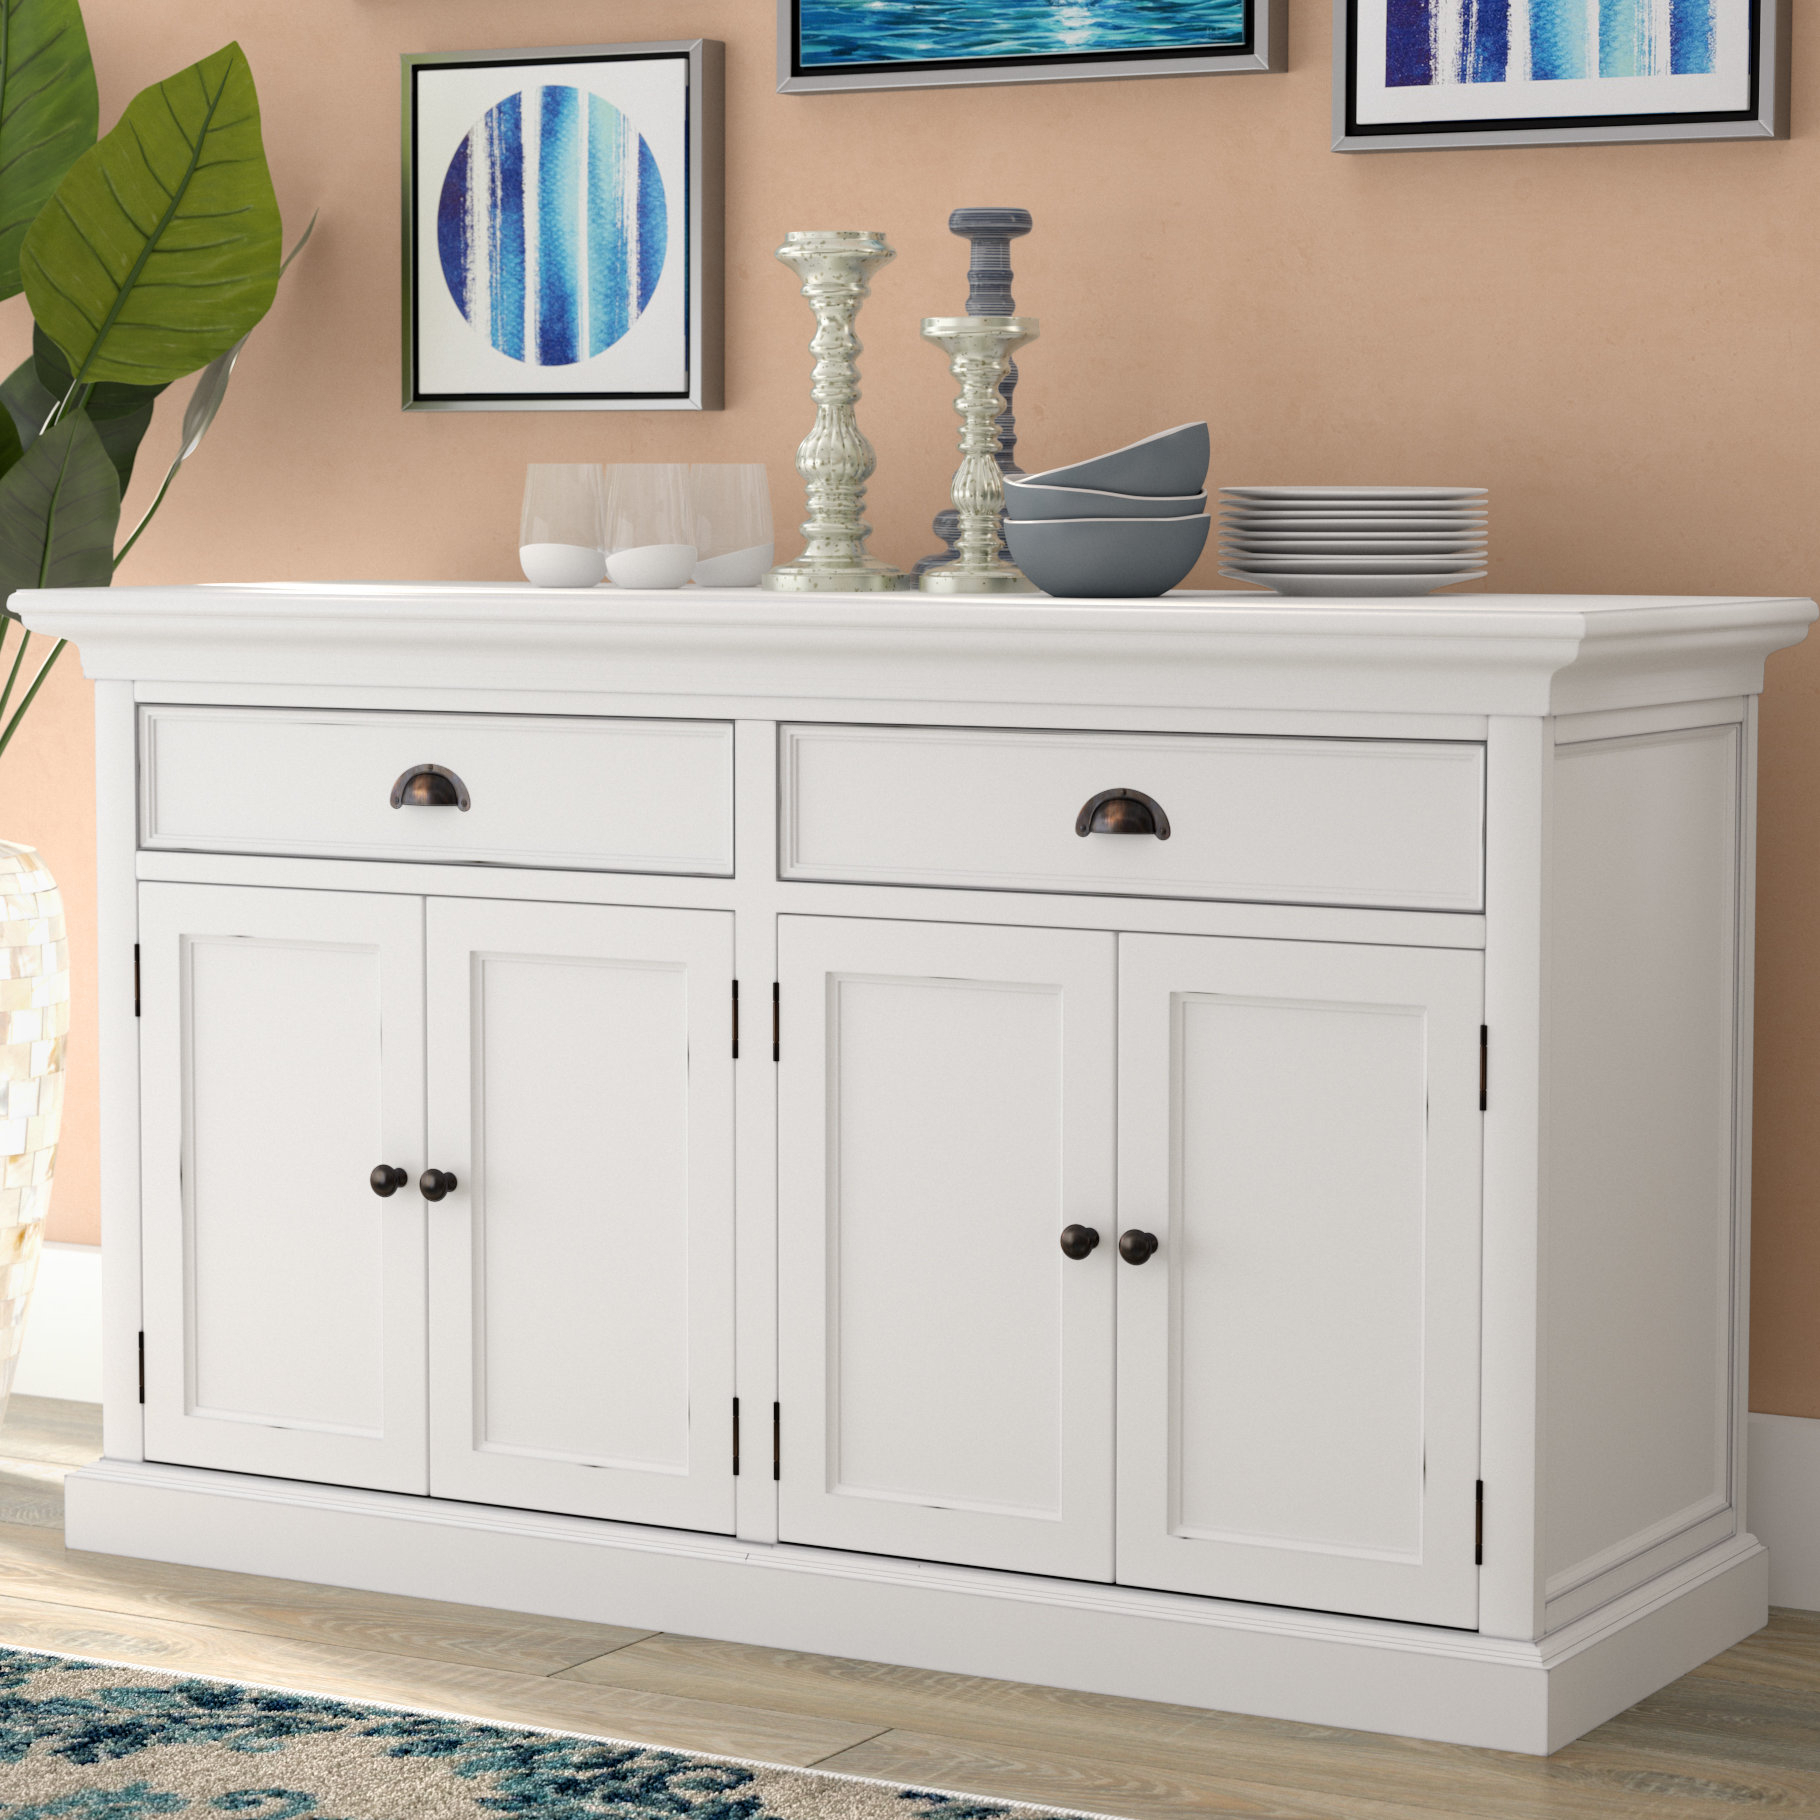 Beachcrest Home Amityville Wood Sideboard & Reviews | Wayfair throughout Saguenay Sideboards (Image 3 of 30)